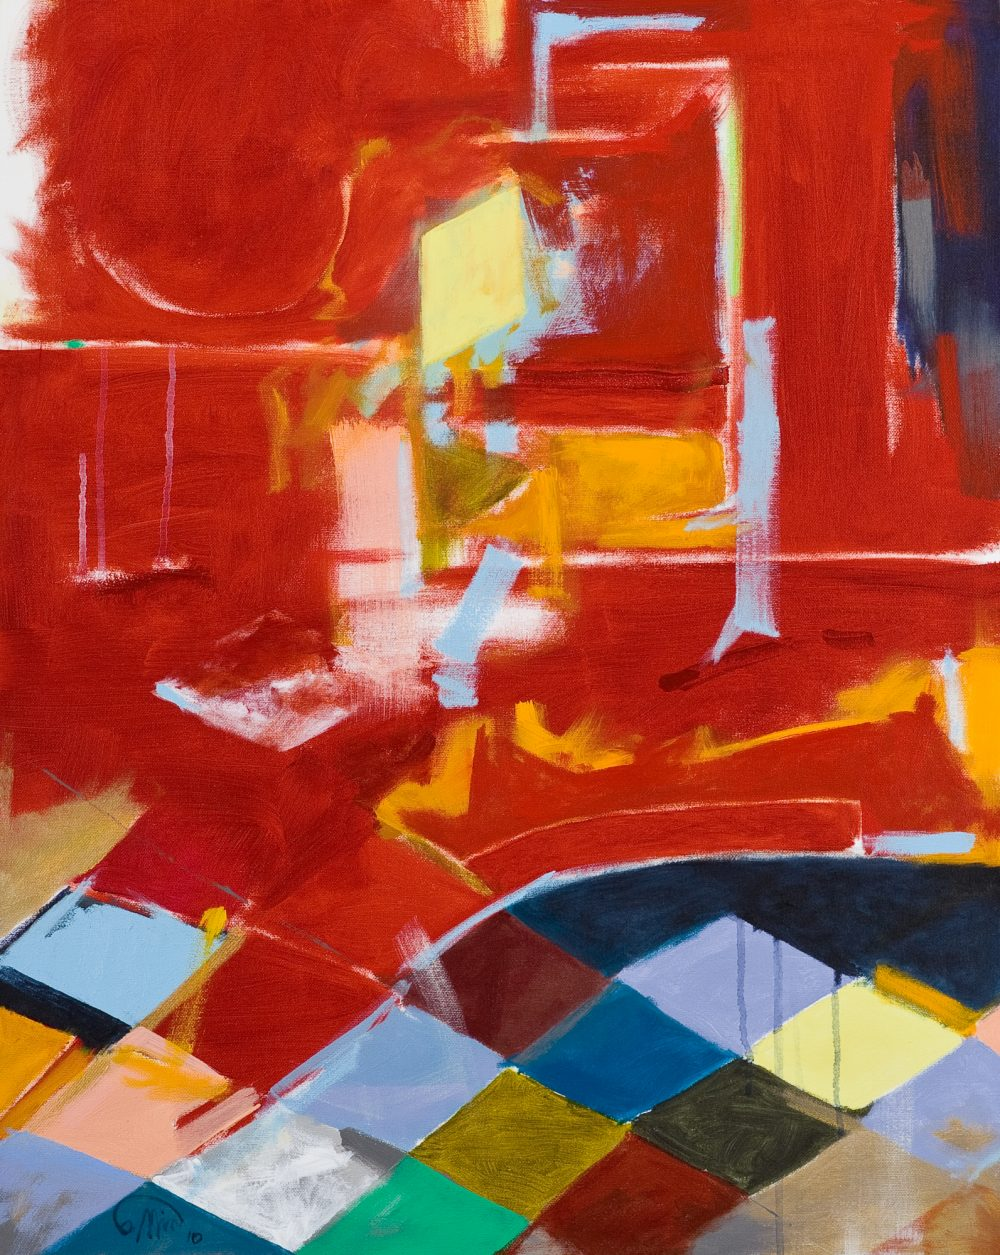 Red Room Harlequin,2010 - 30 x 24 inches Acrylic and irredescent acrylic on canvas